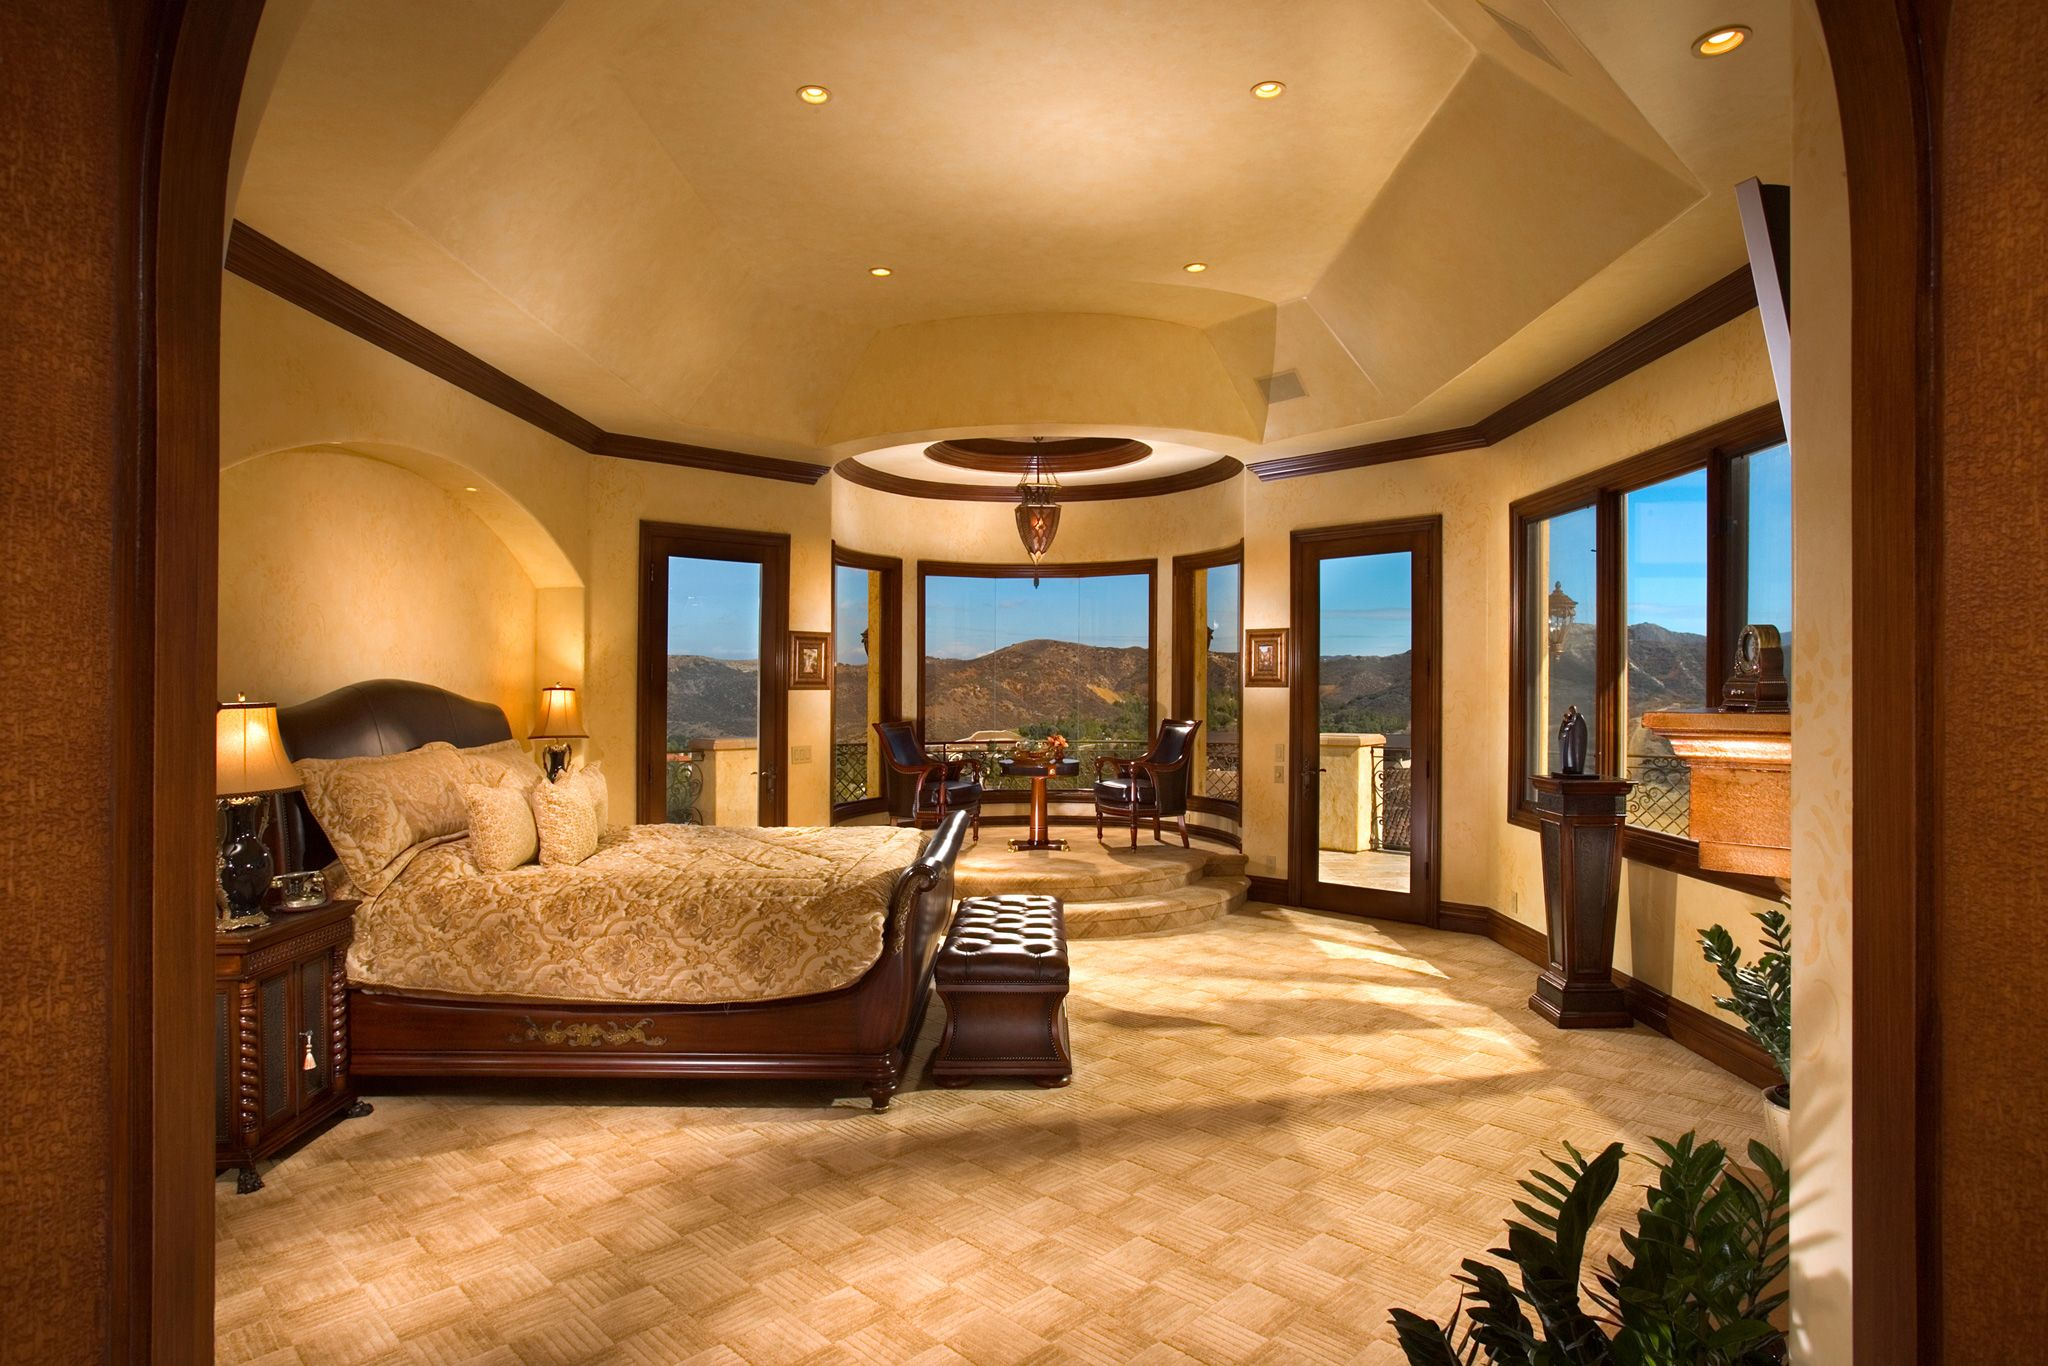 10 celebrity rooms that you have to see Cool master bedroom art